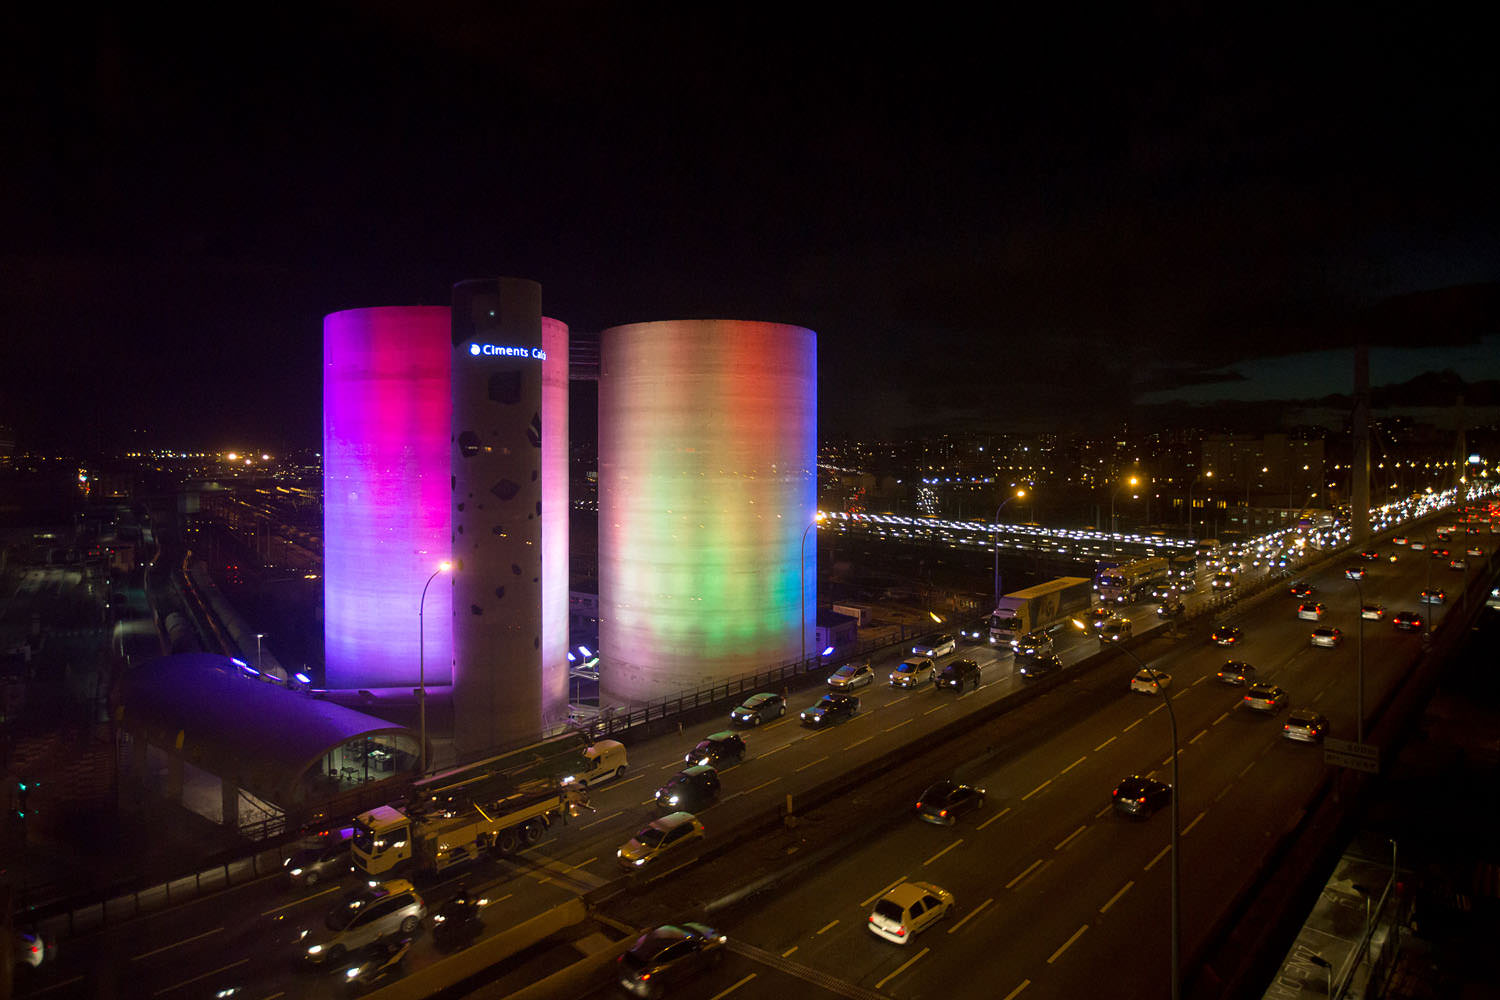 """SolarWind"", Laurent Grasso's technical and visually monumental prowess at Paris's gates"